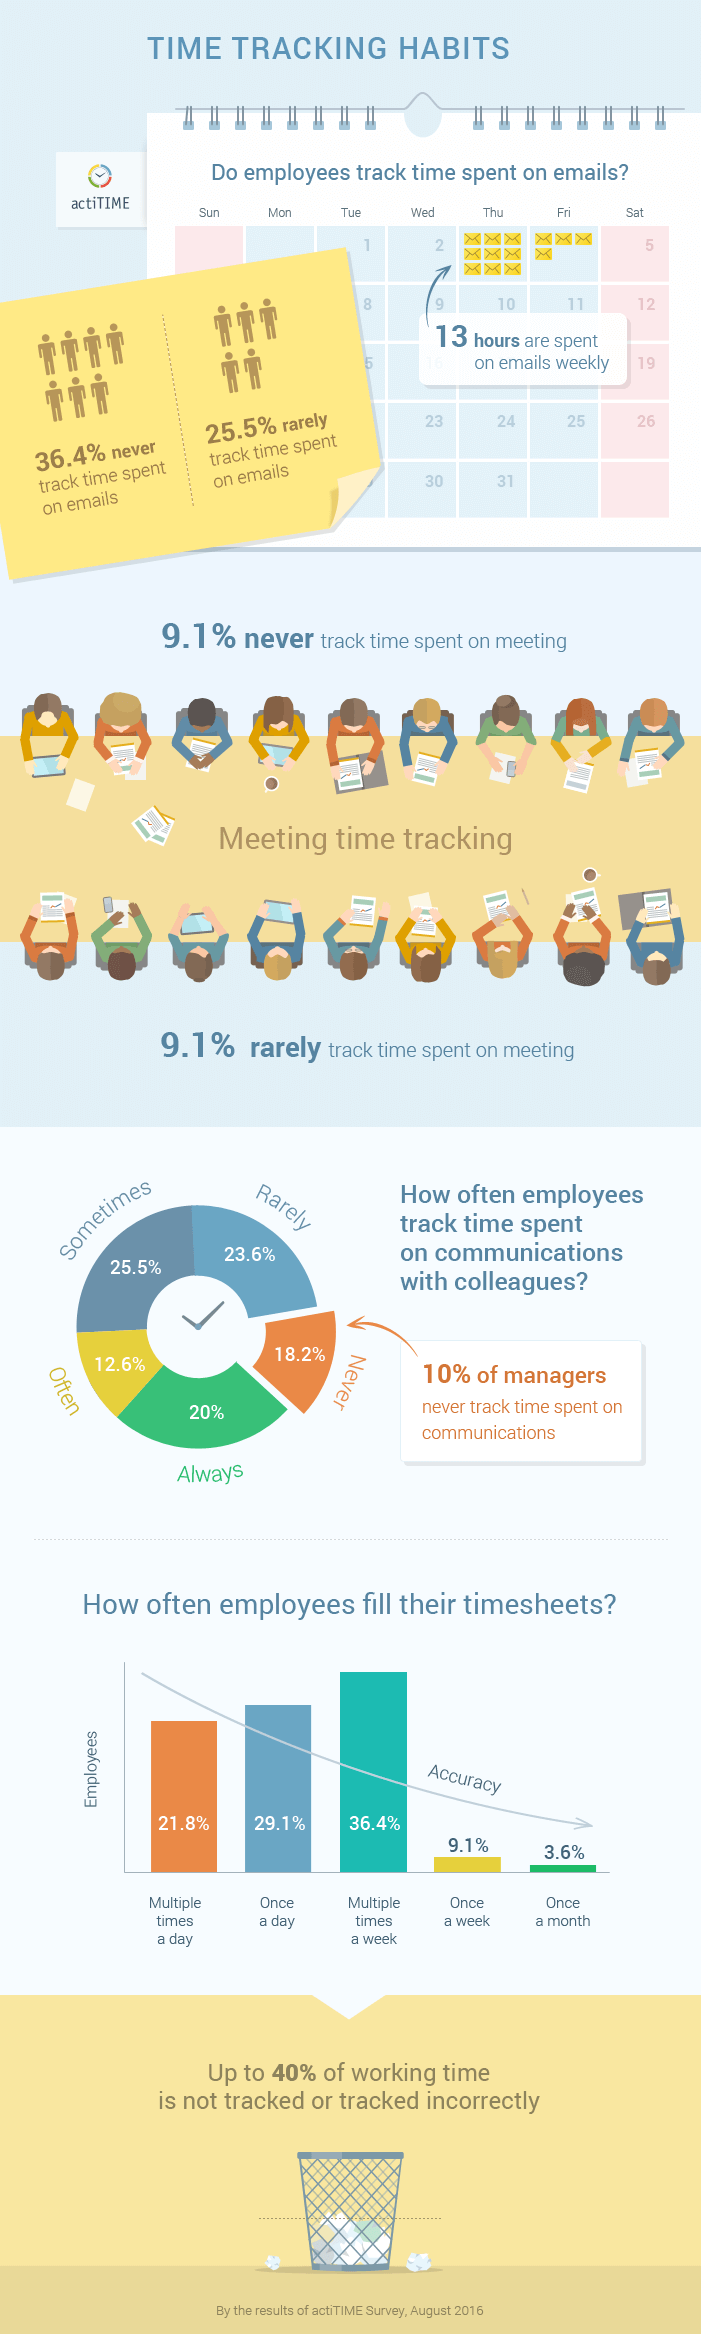 How Poor Tracking of Work Time Affects Your Business - Image 2